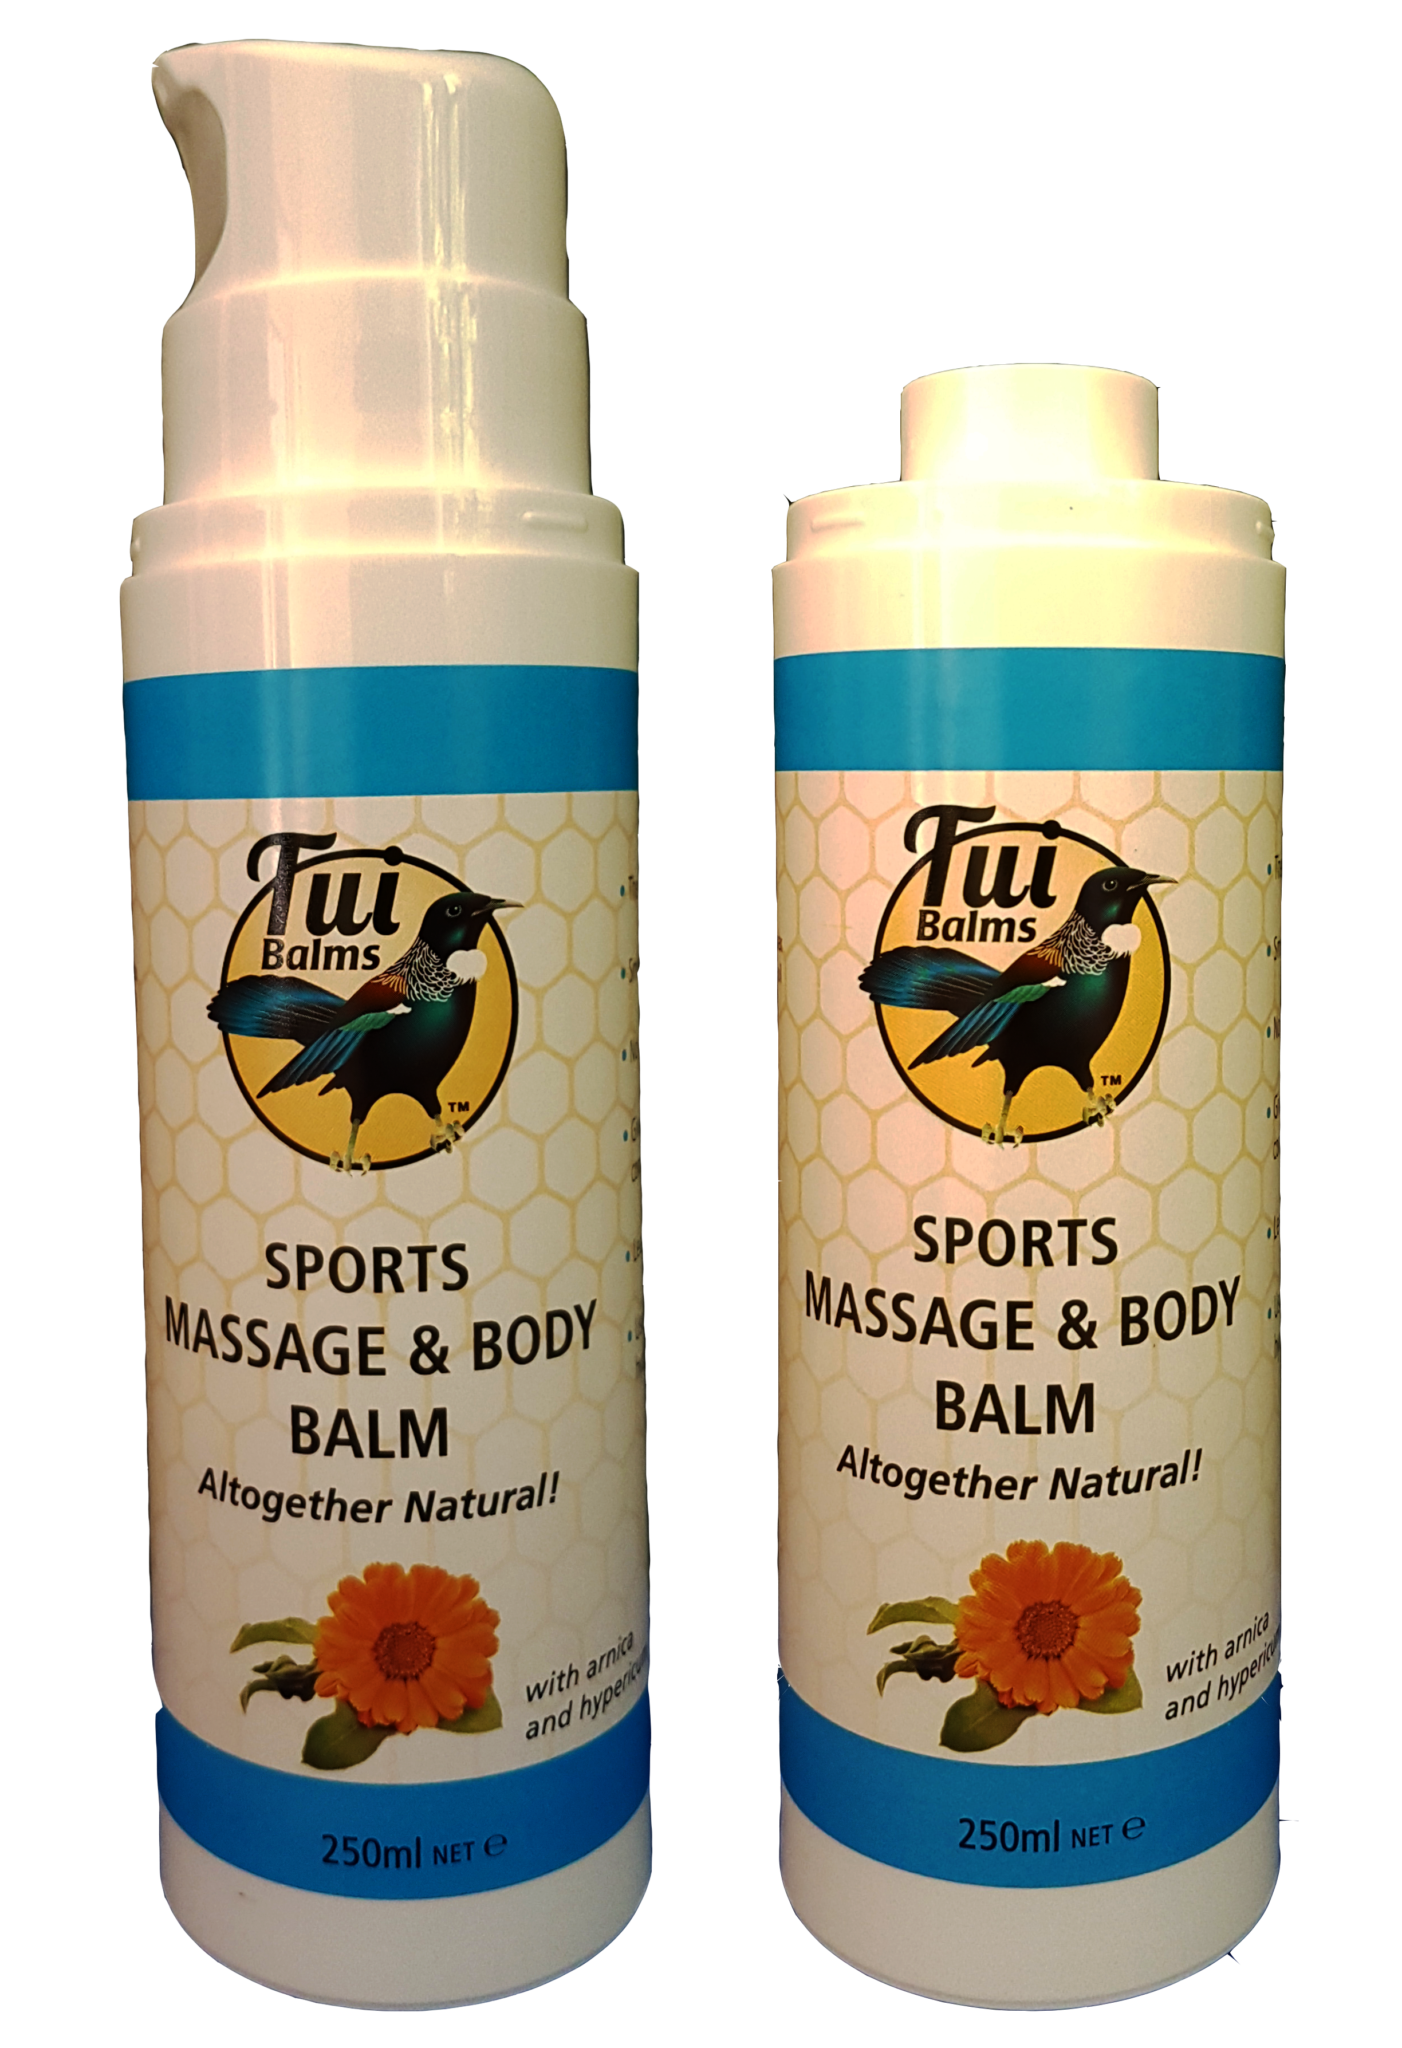 Massage & Body Balm SPORTS – Pump